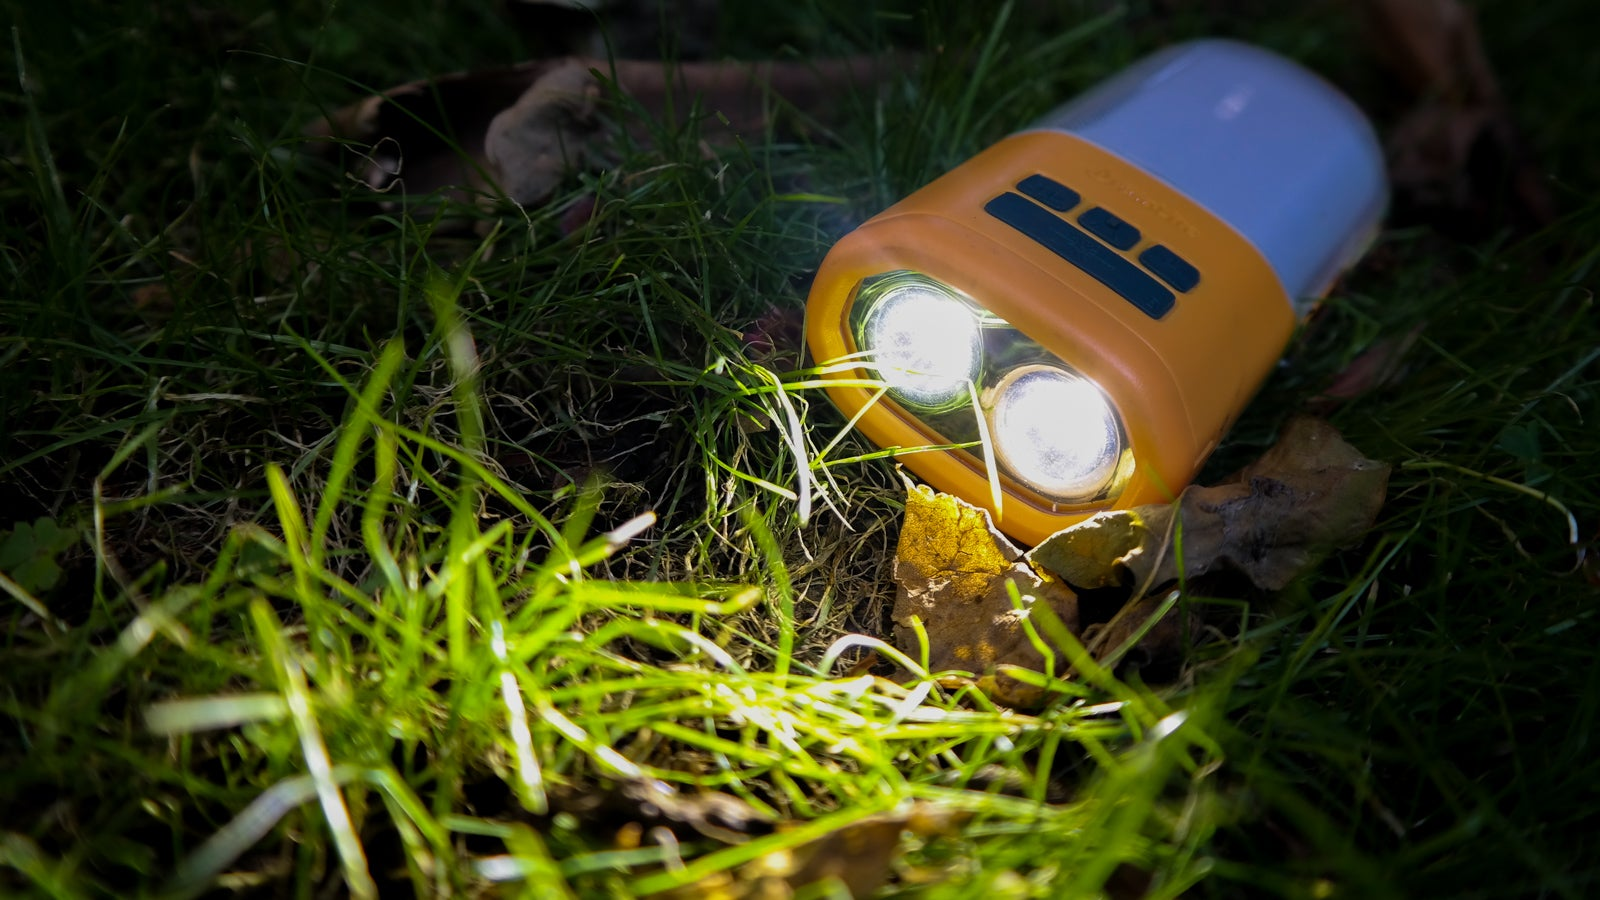 BioLite's NanoGrid Is a Lantern, Battery, and Flashlight All In One